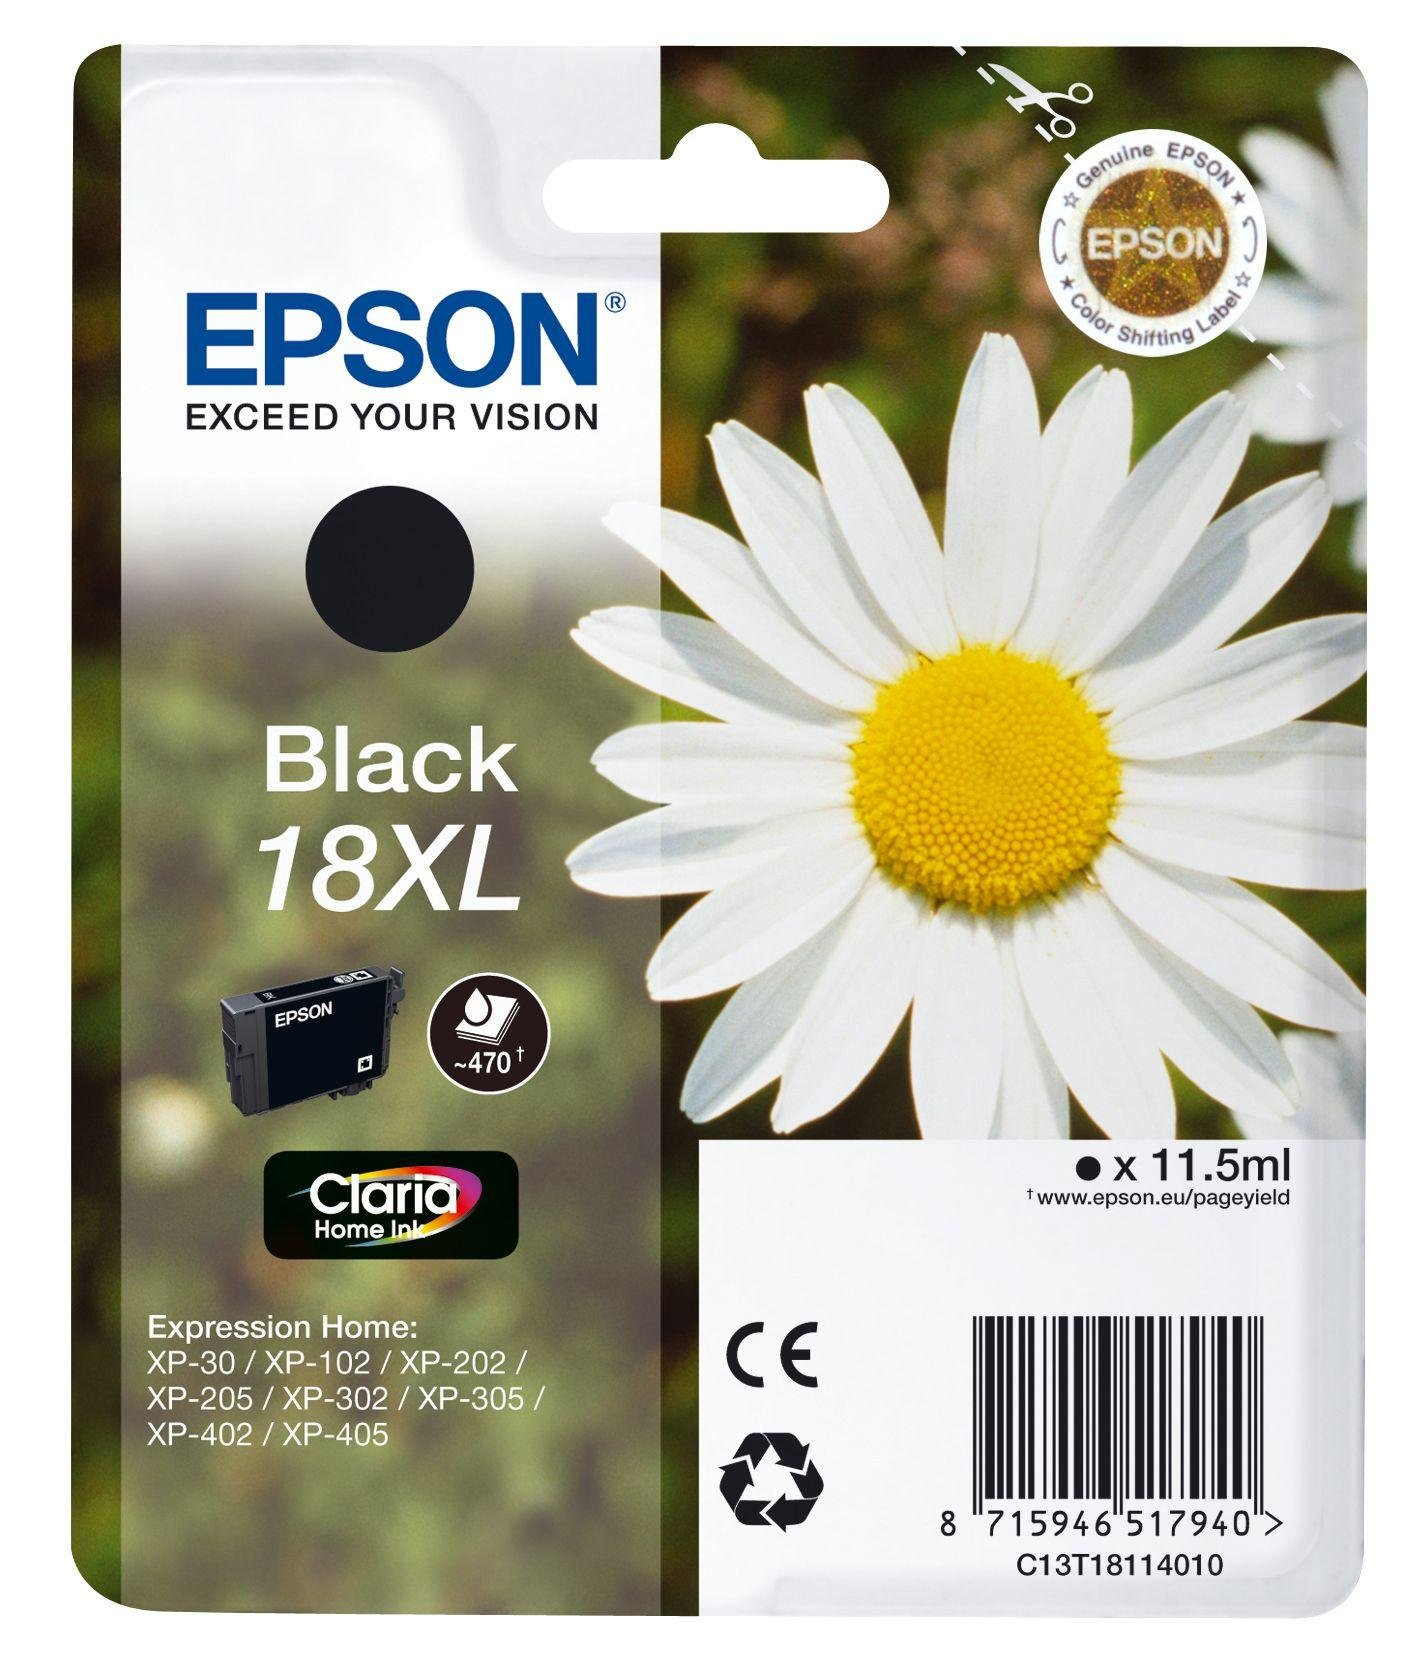 Epson Daisy 18XL Black Ink Cartridge from Epson